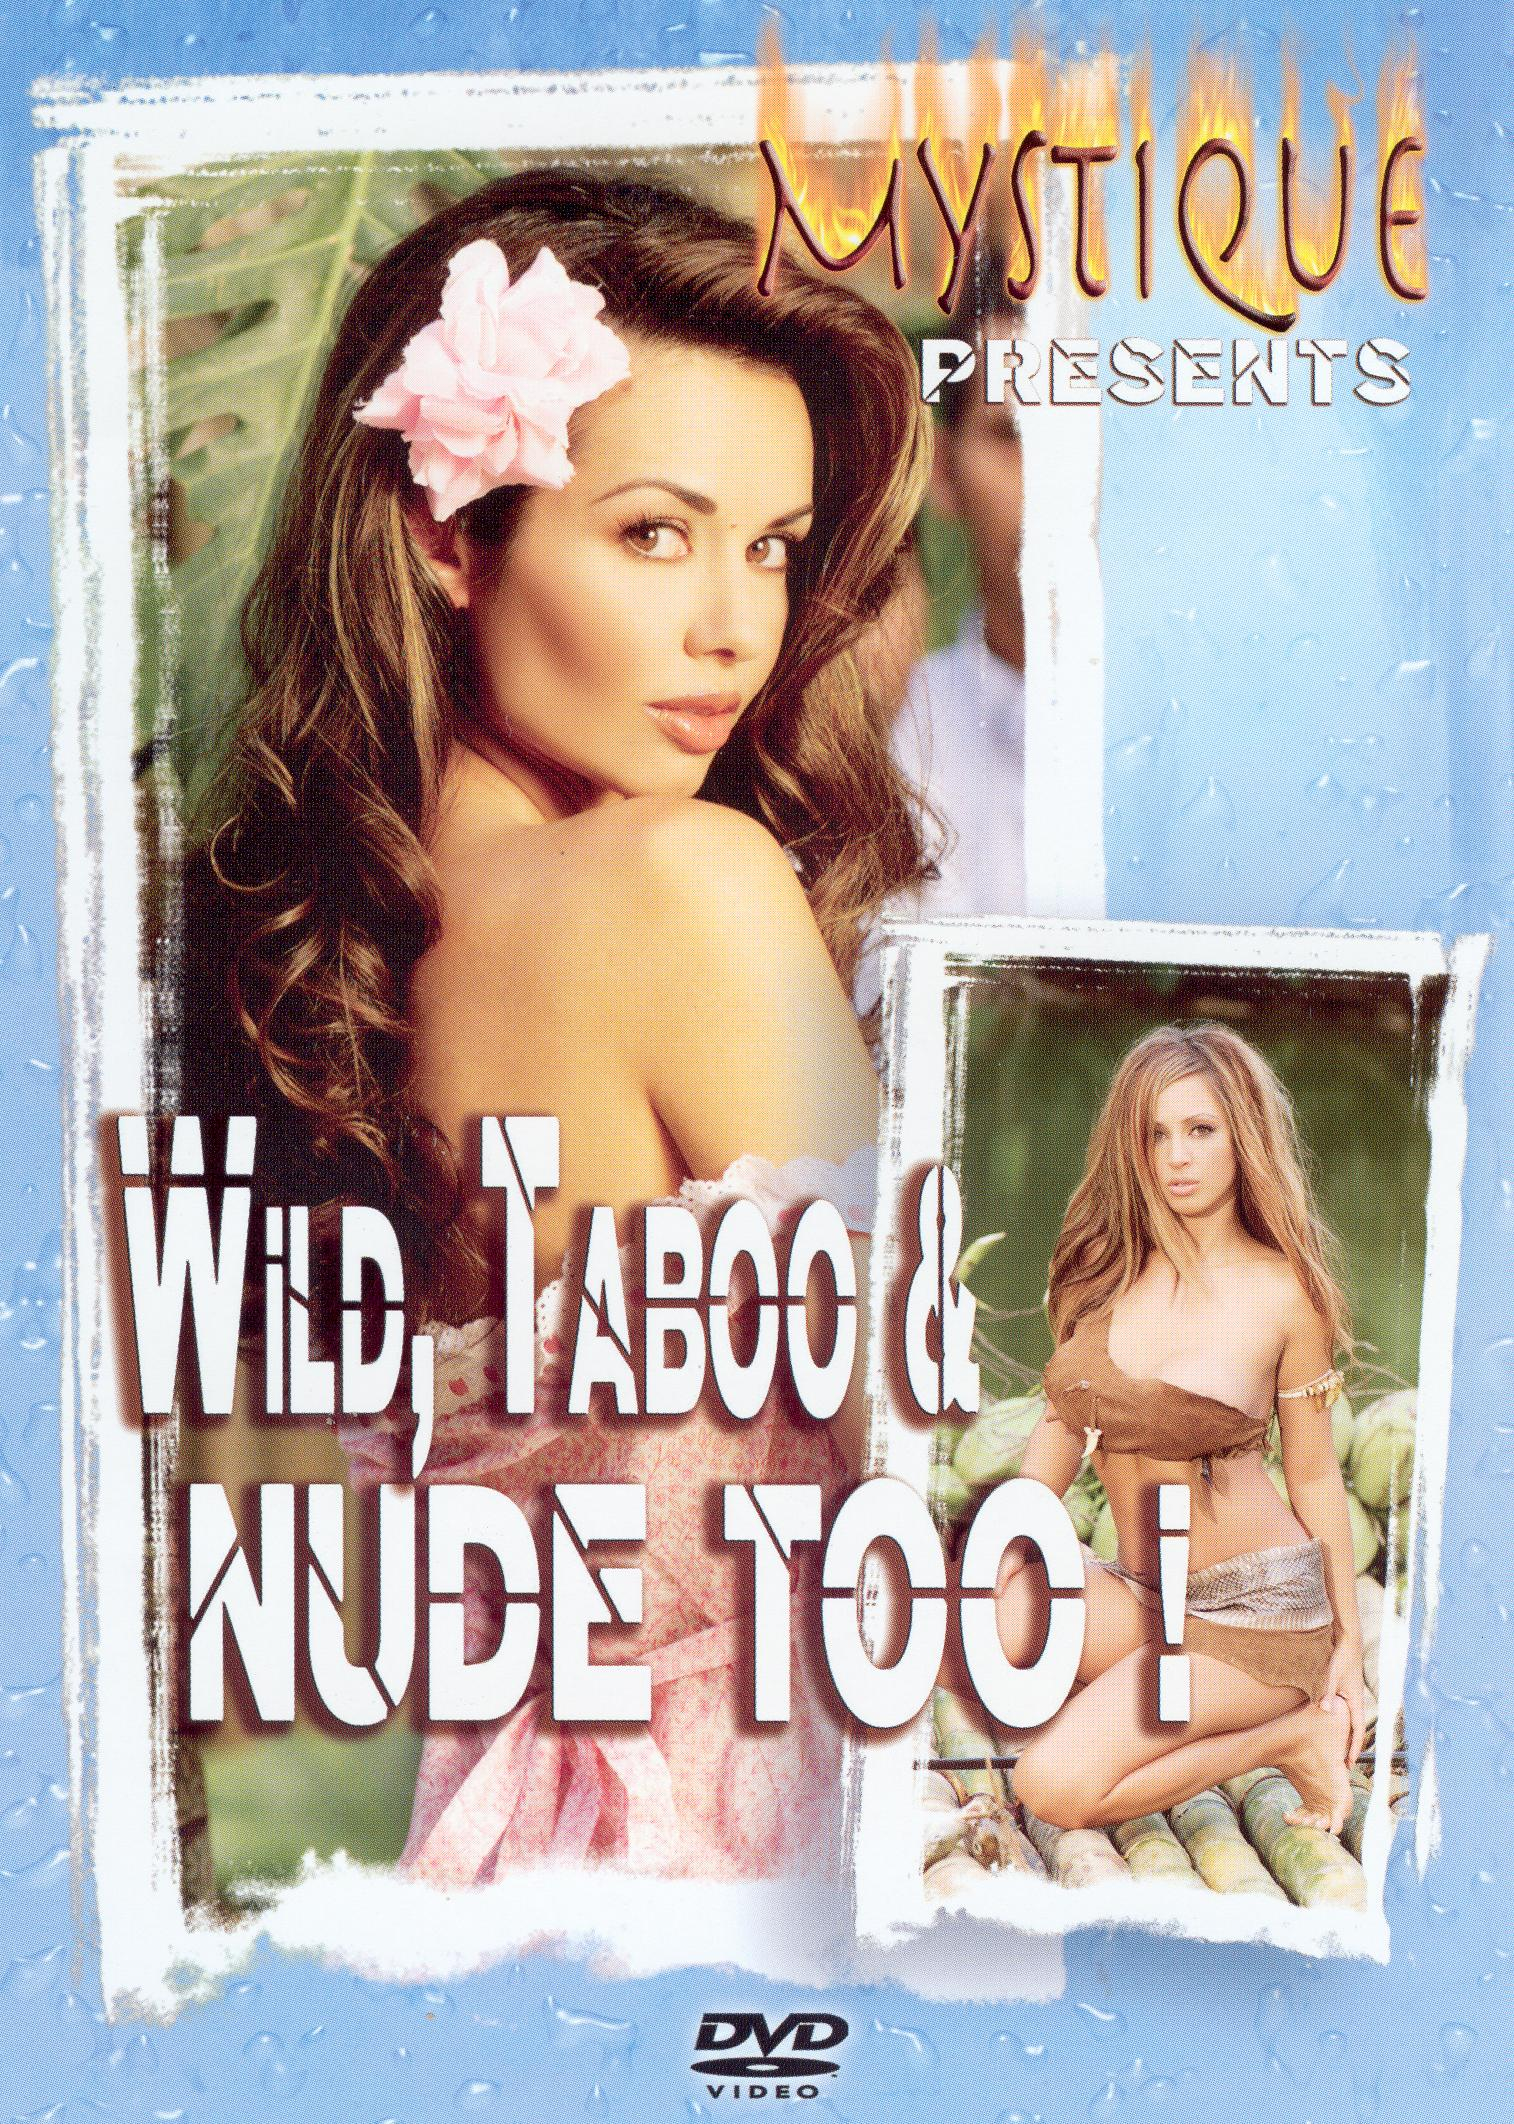 Mystique Presents: Wild, Taboo and Nude Too!